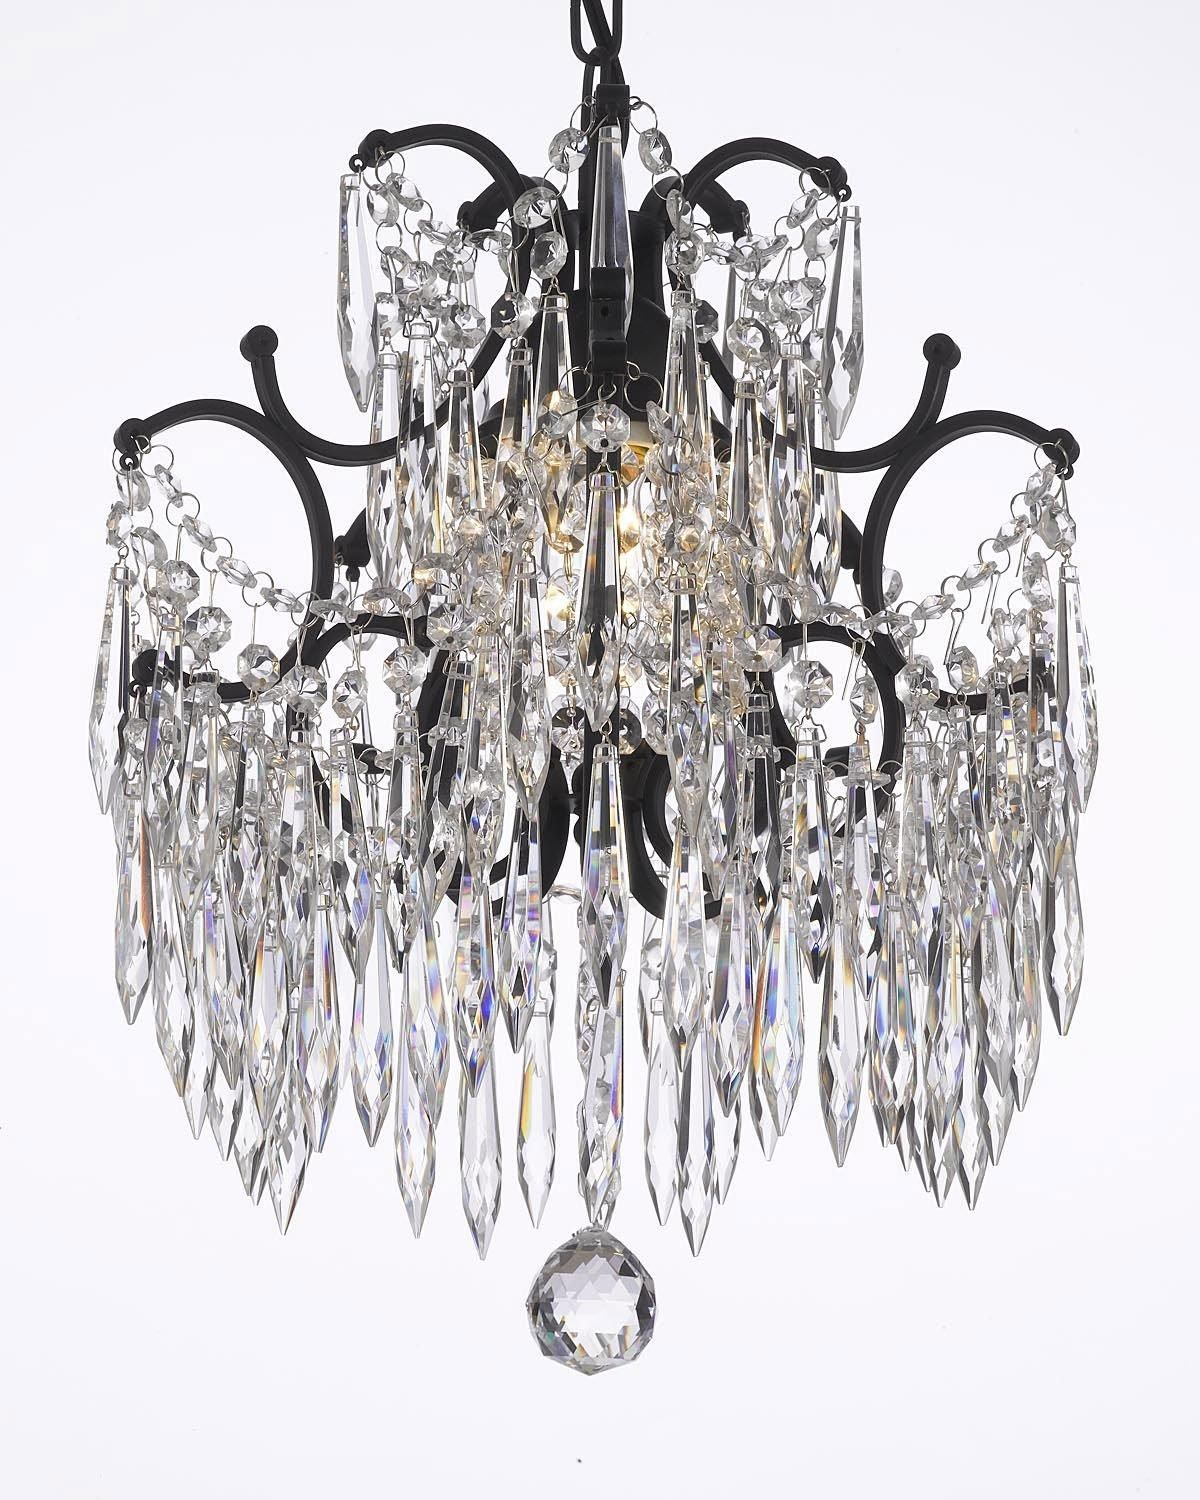 Wrought iron crystal chandelier dressed with icicle crystals wrought iron crystal chandelier dressed with icicle crystals arubaitofo Images